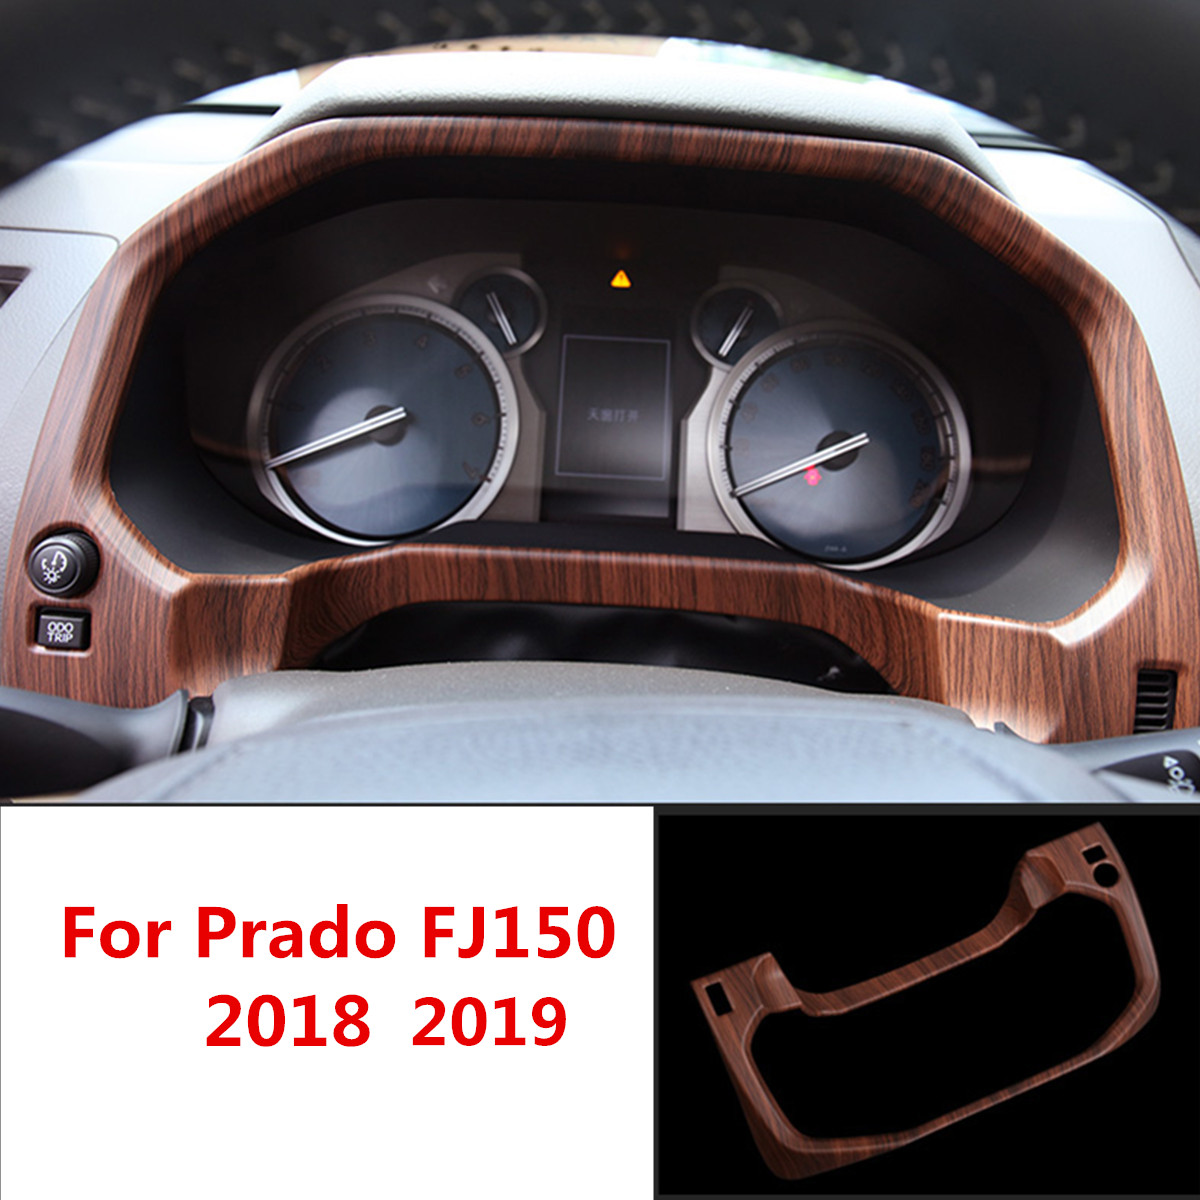 Combination Instrument Pine Wood Grain ABS Trim Cover for Toyota Land Cruiser Prado 150 FJ150 2018